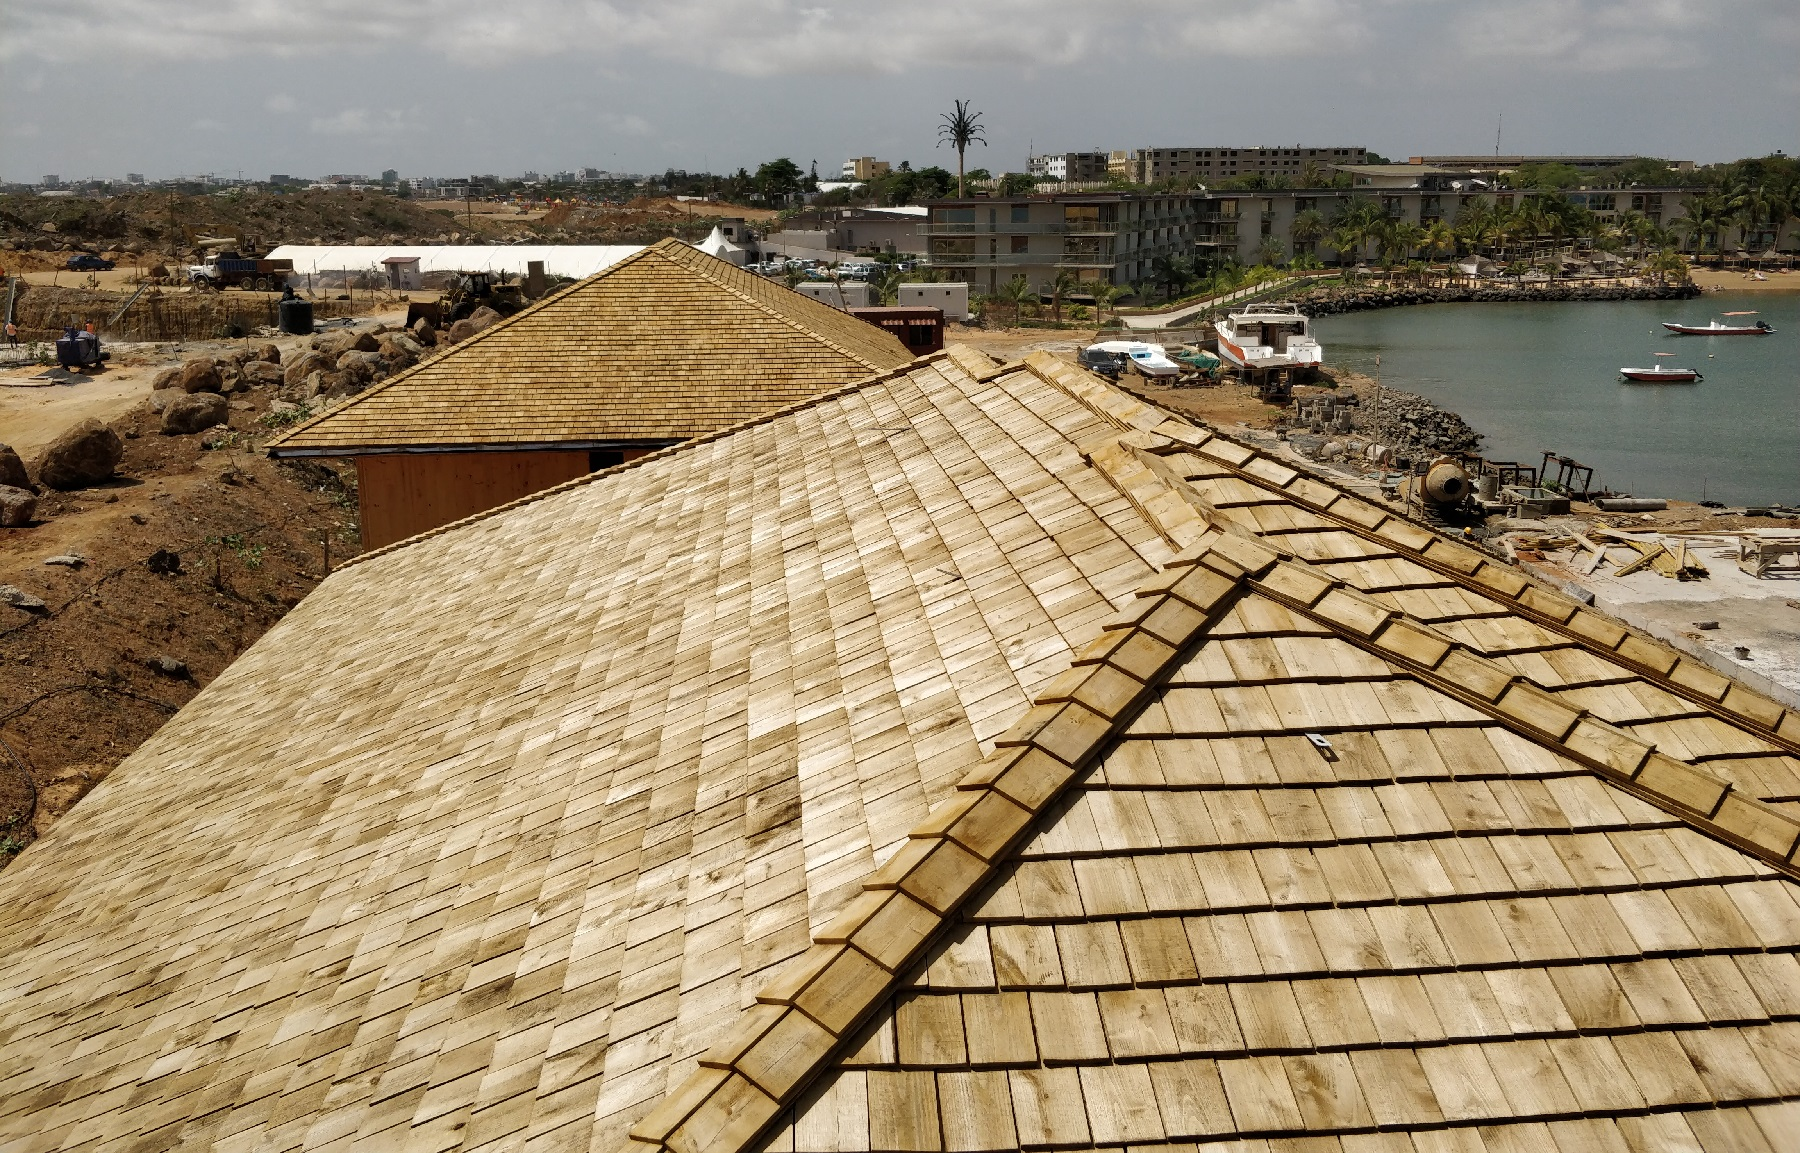 Chestnut Woden Tiles in Senegal